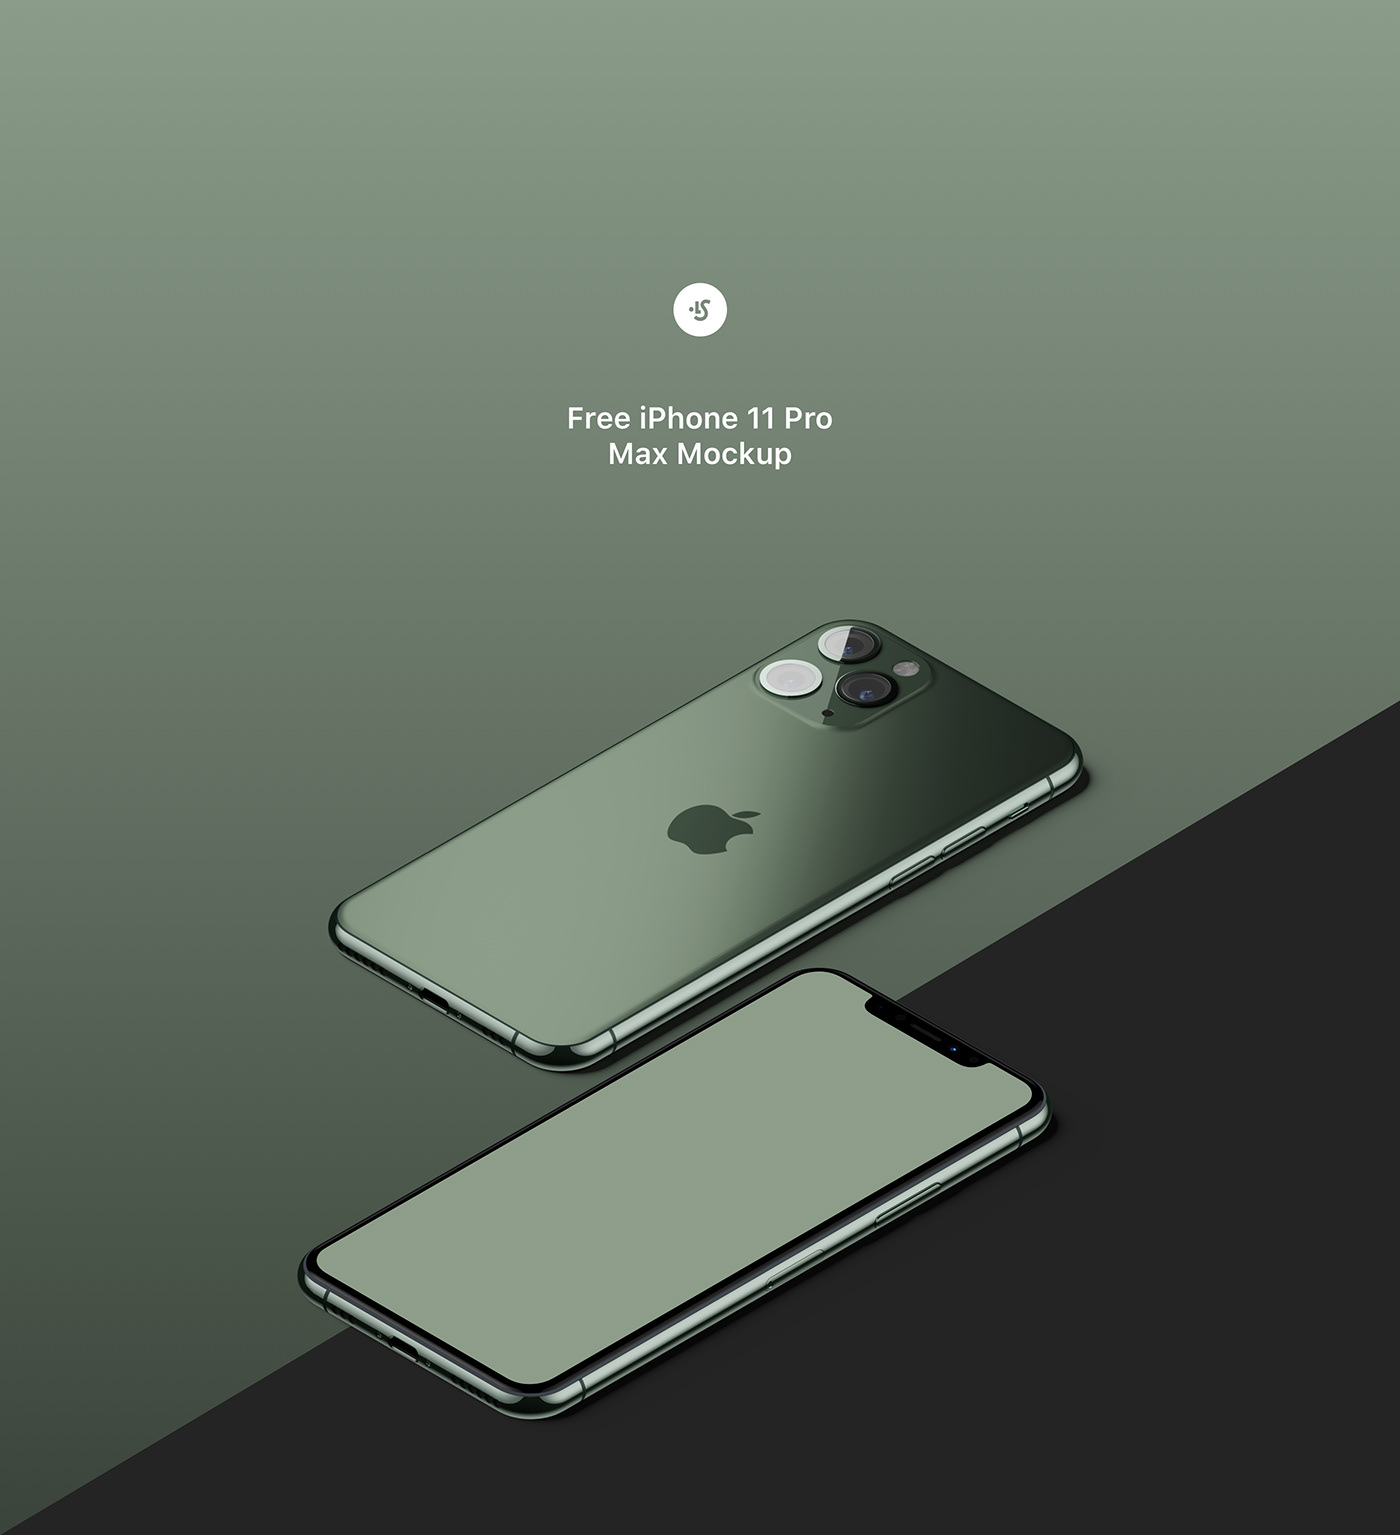 Free Iphone 11 Pro Max Mockup On Behance